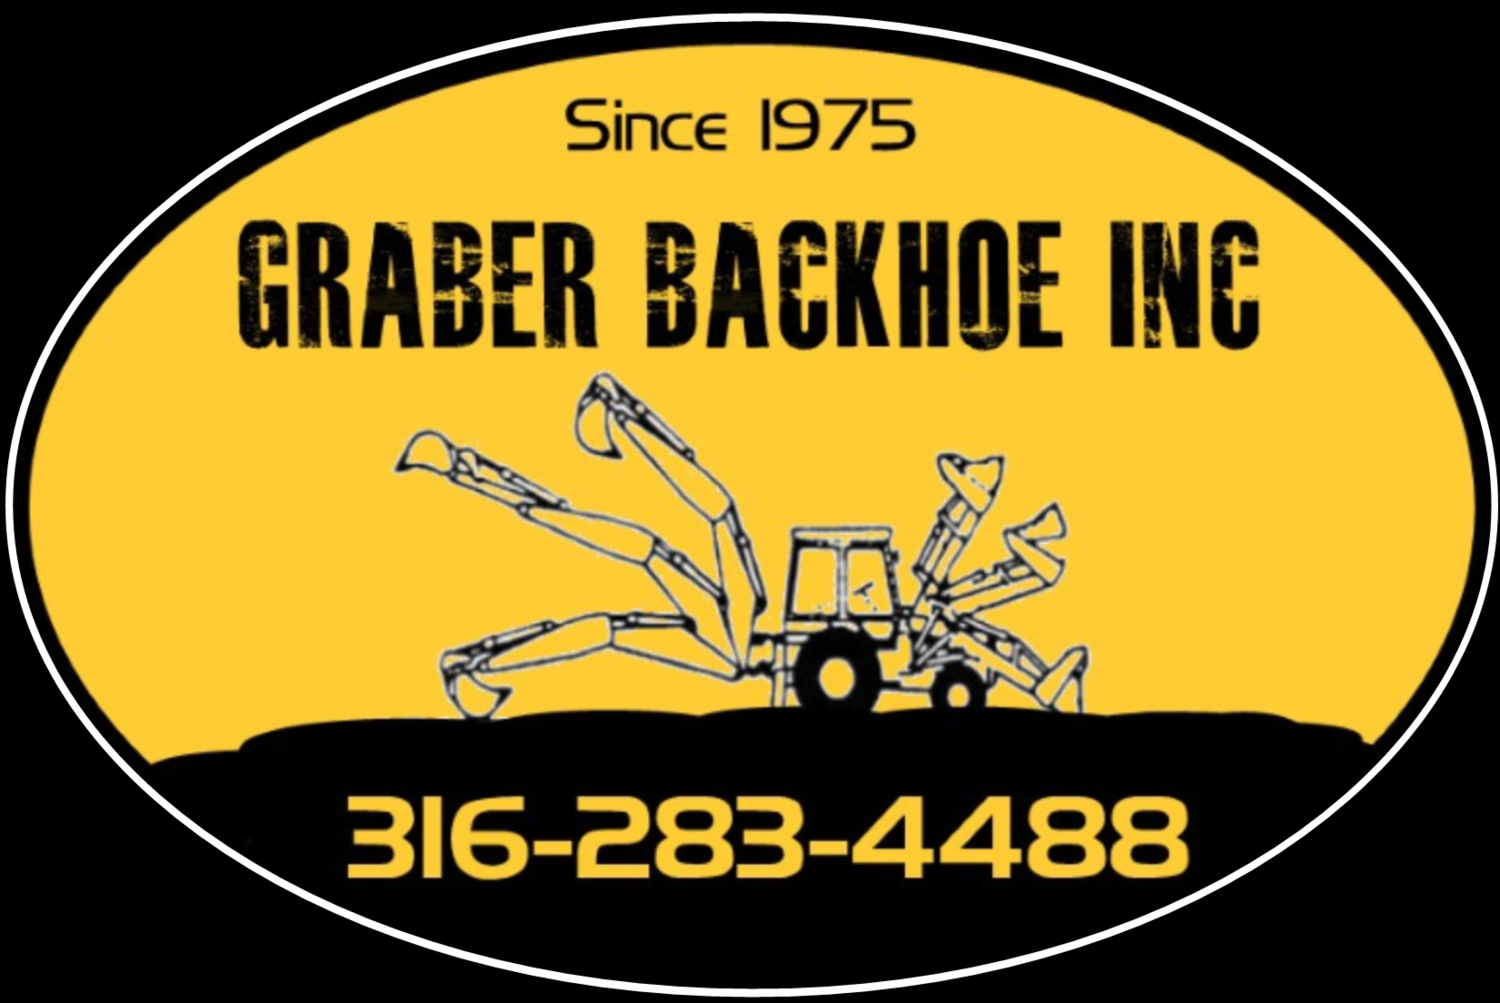 Graber Backhoe, Inc